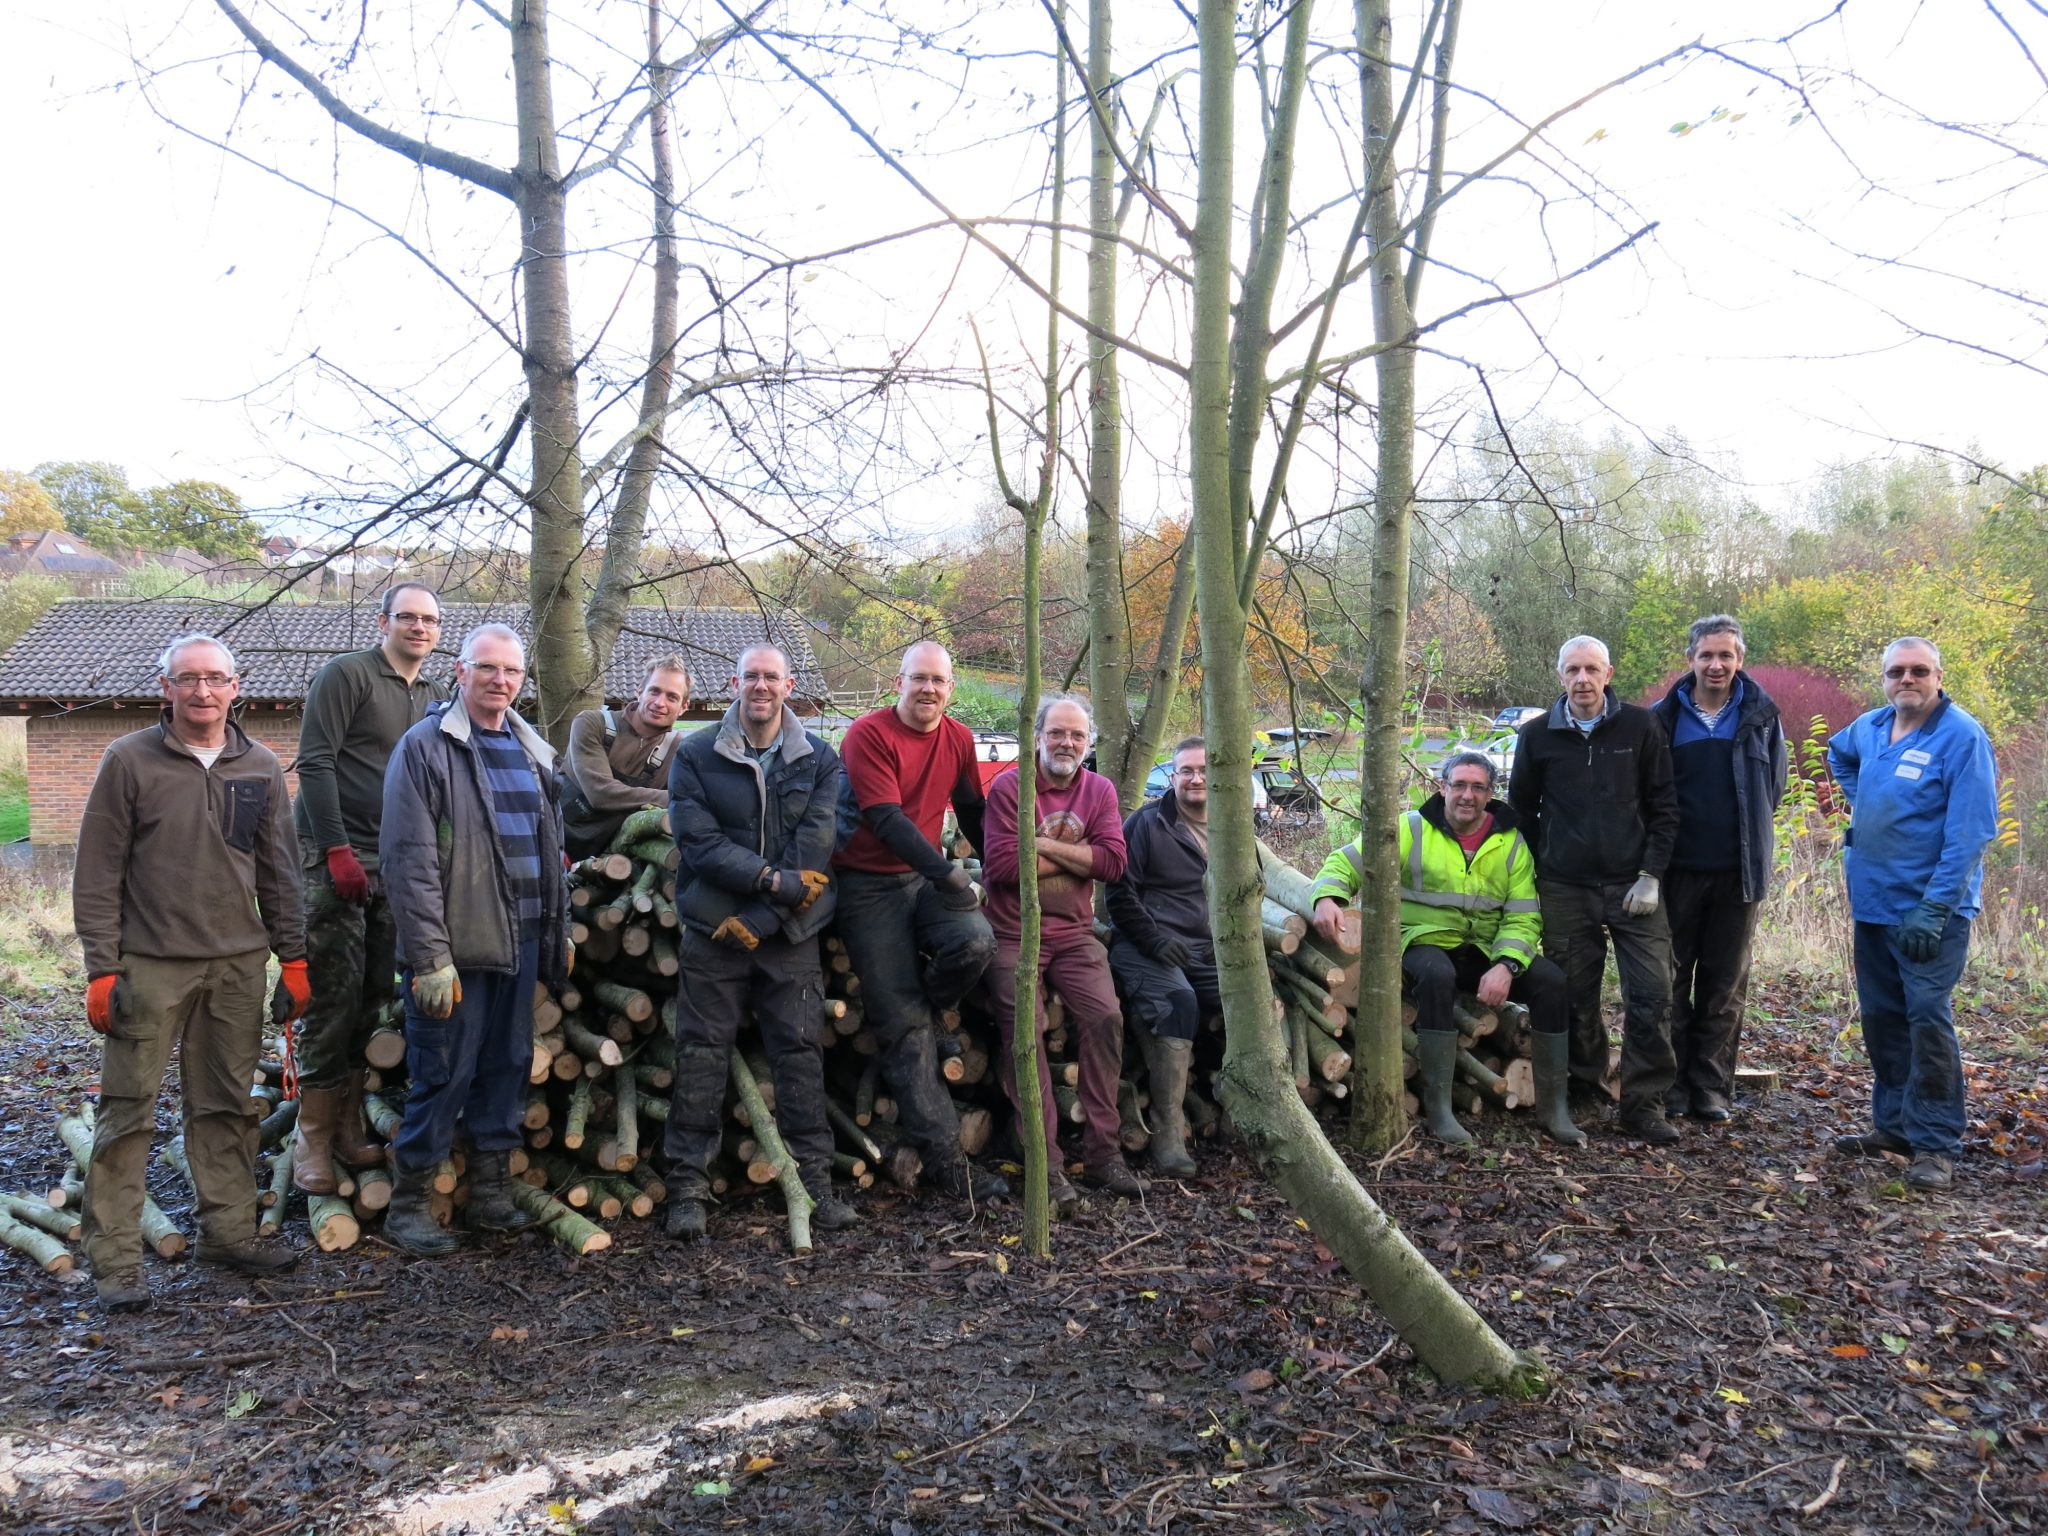 Group of volunteers standing in front of logs felled as part of community woodfuel day